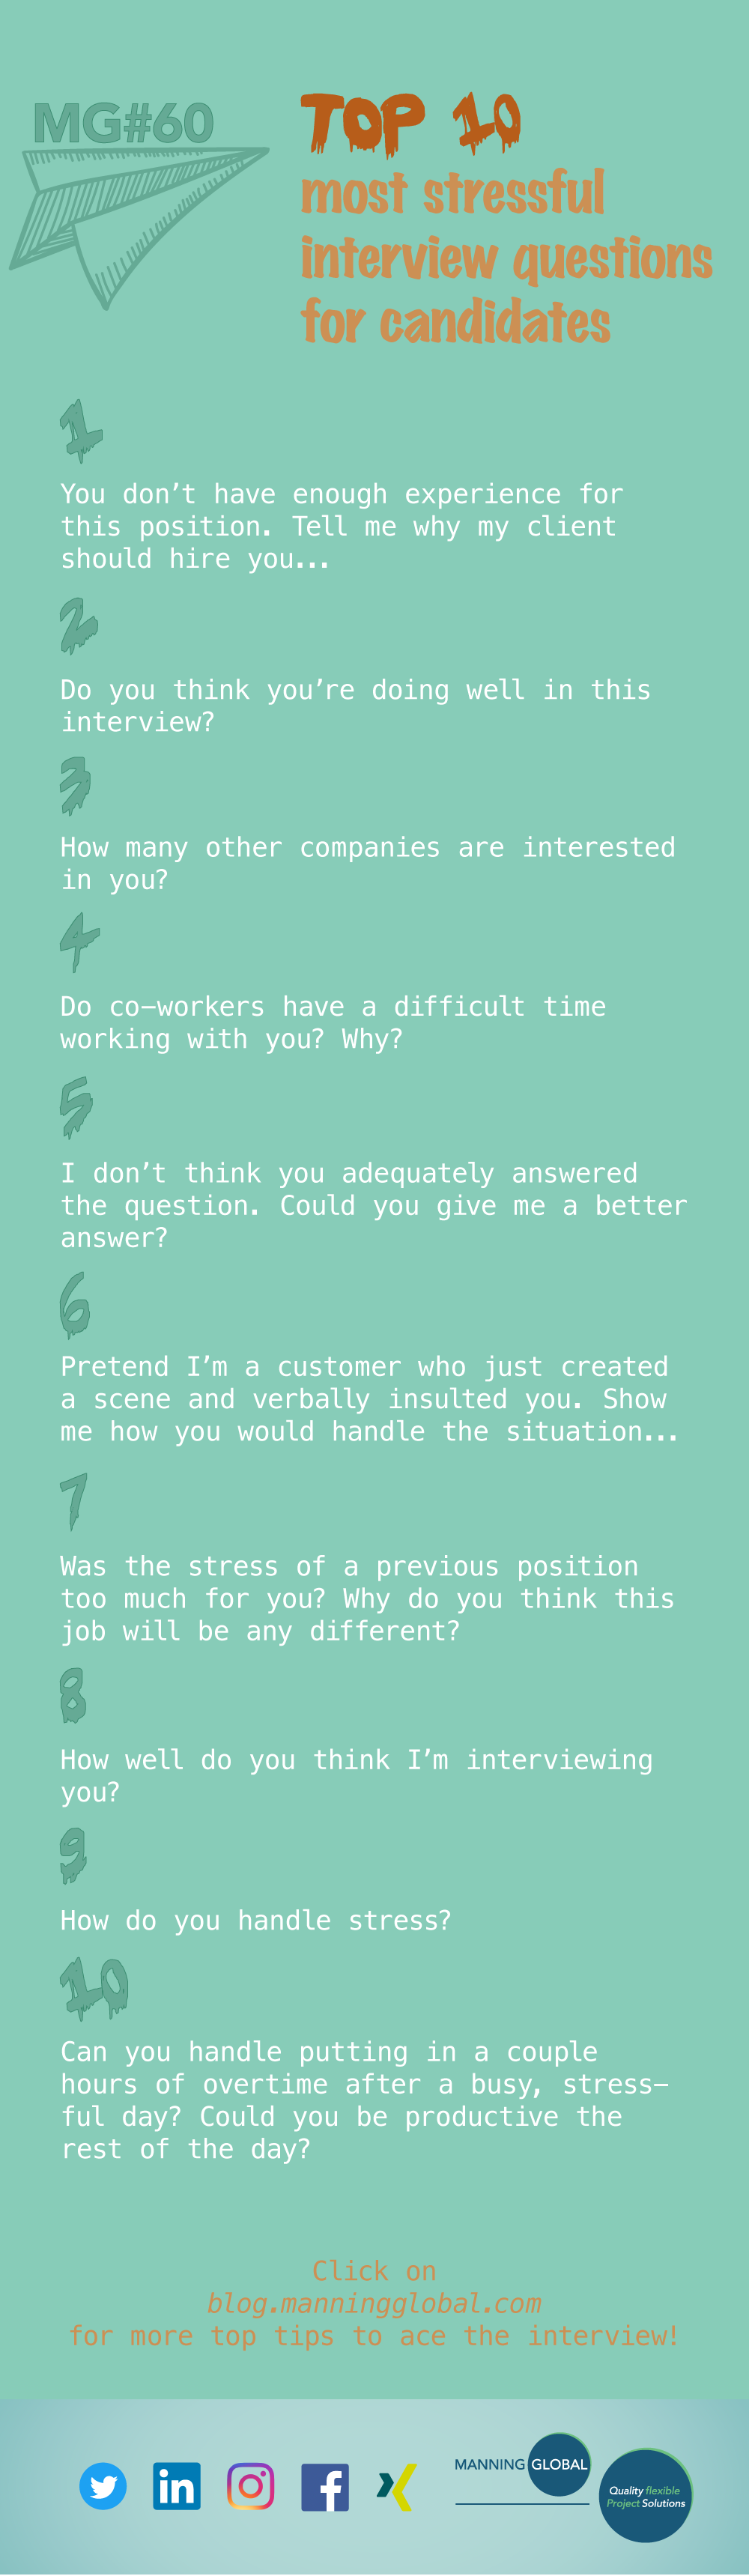 10 stress interview questions to really test your